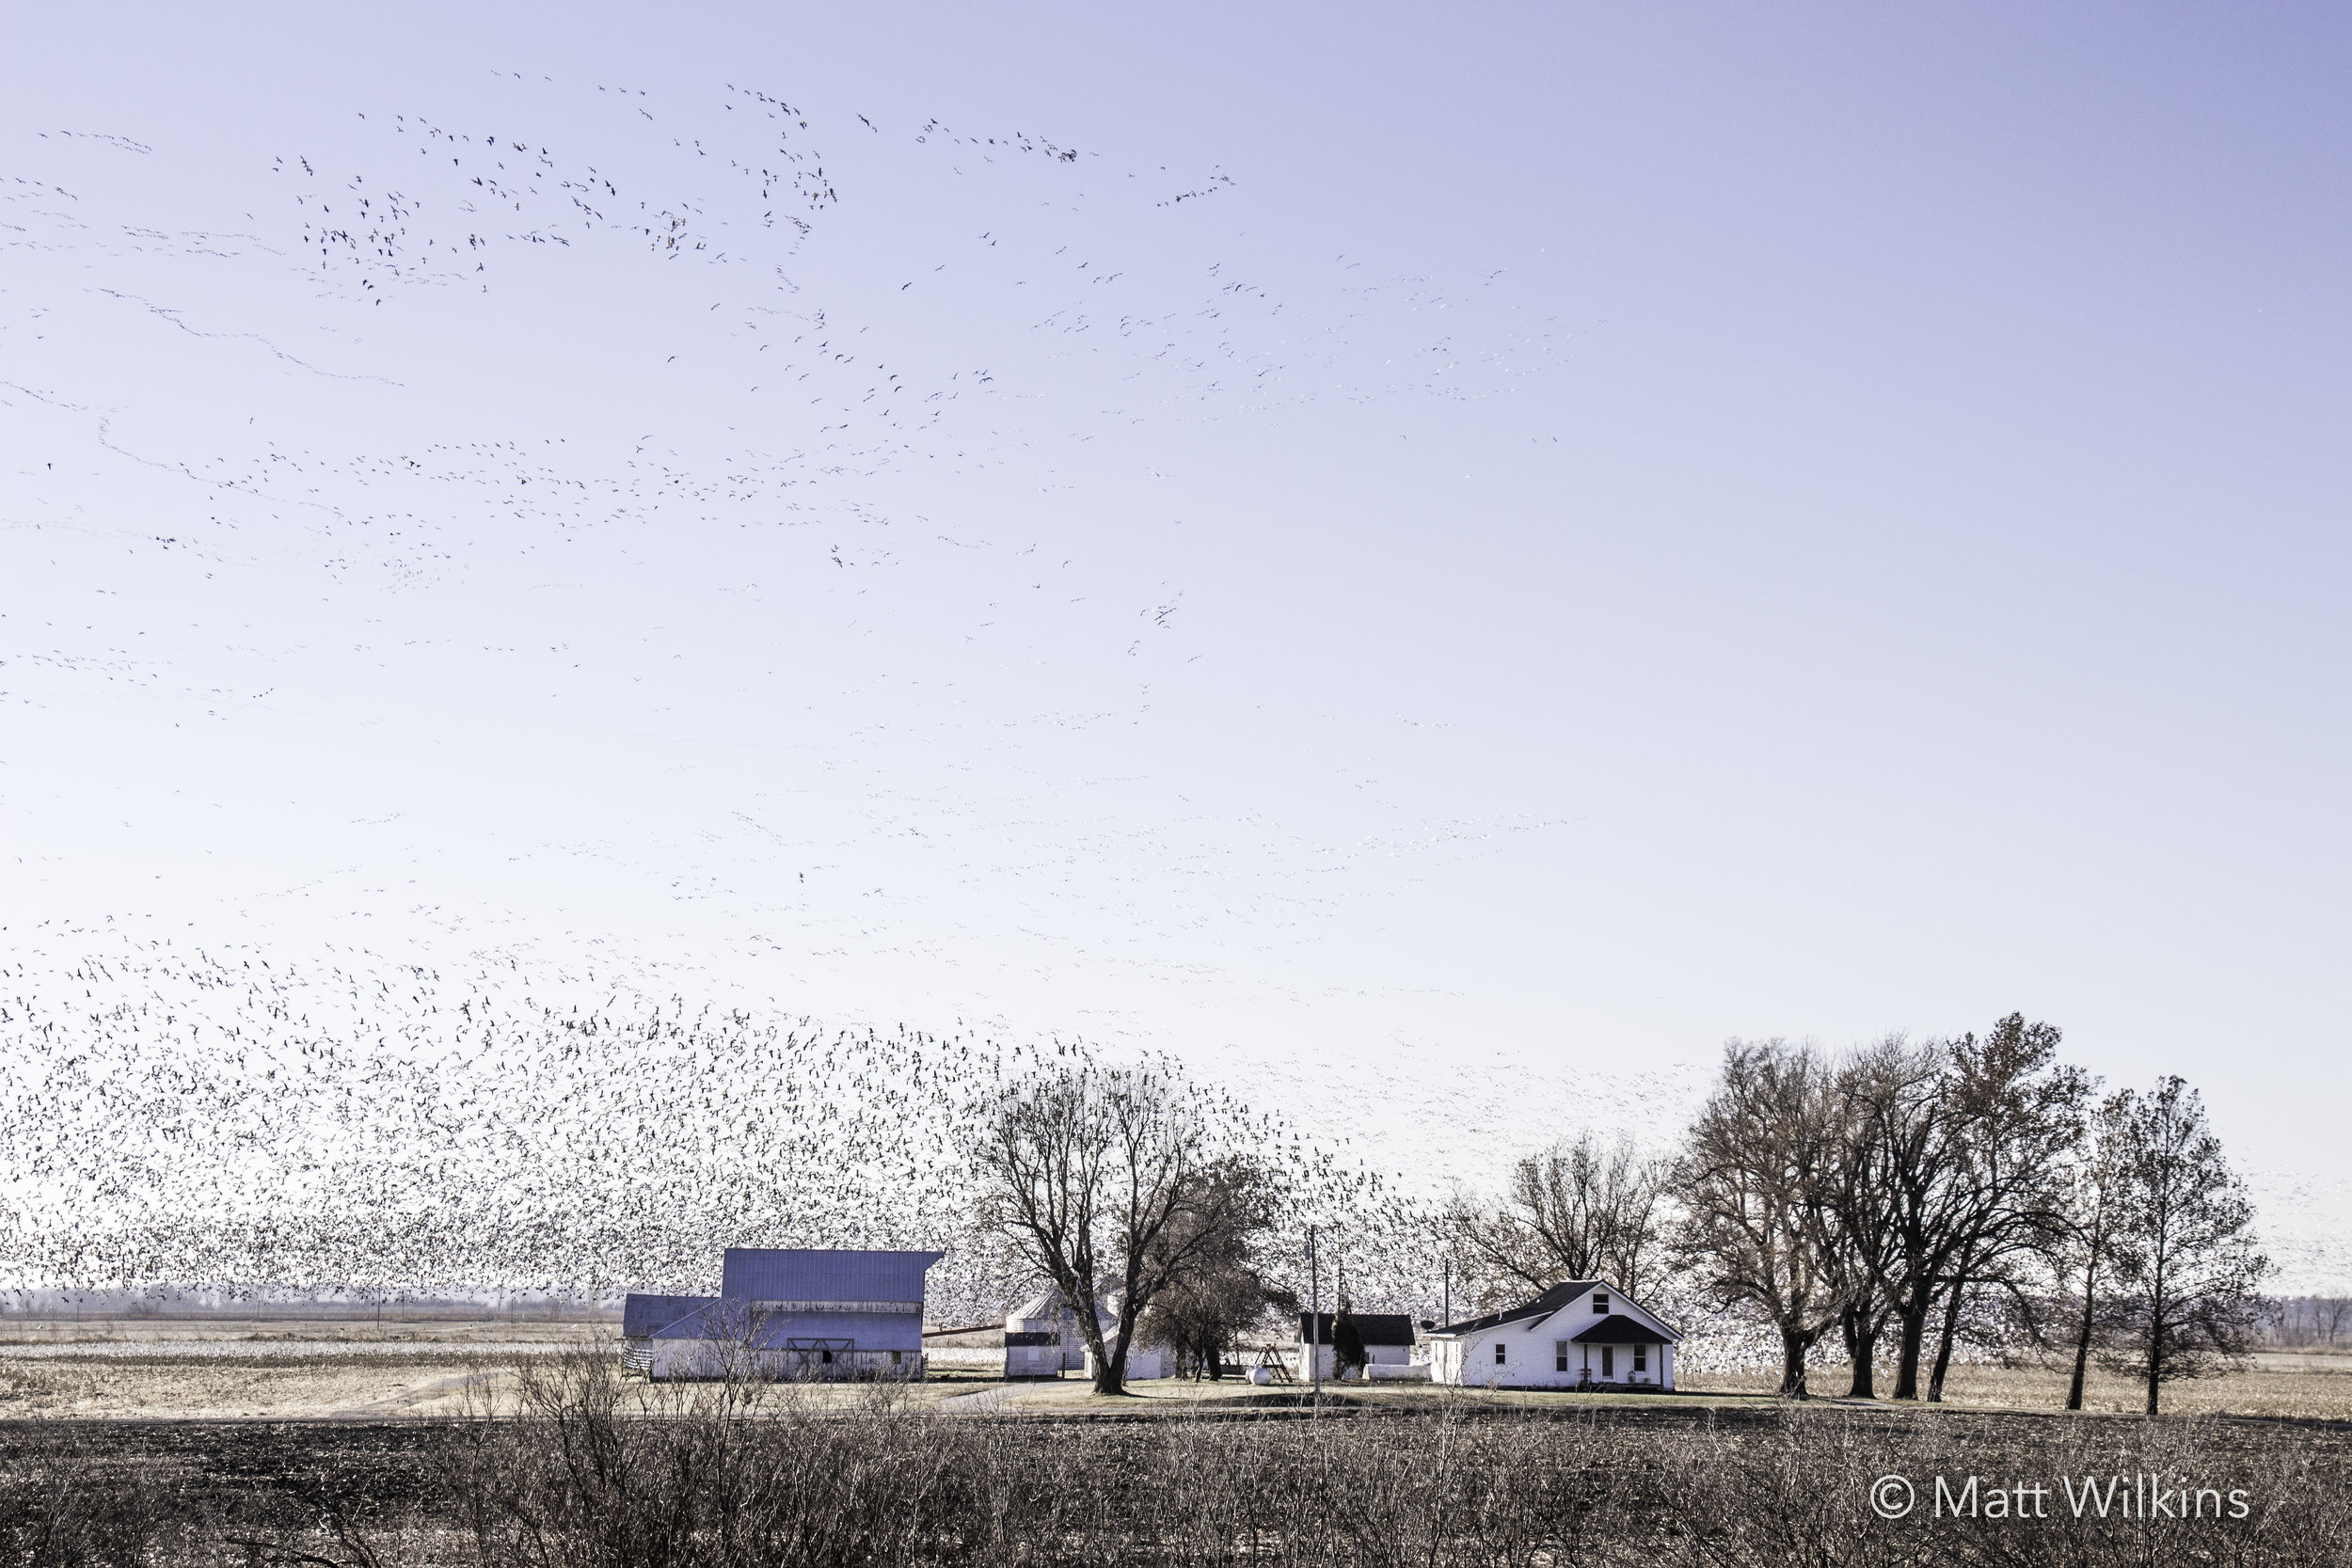 snow-geese-stopping-over-at-a-nebraska-farmhouse-on-their-way-south_25033384945_o.jpg